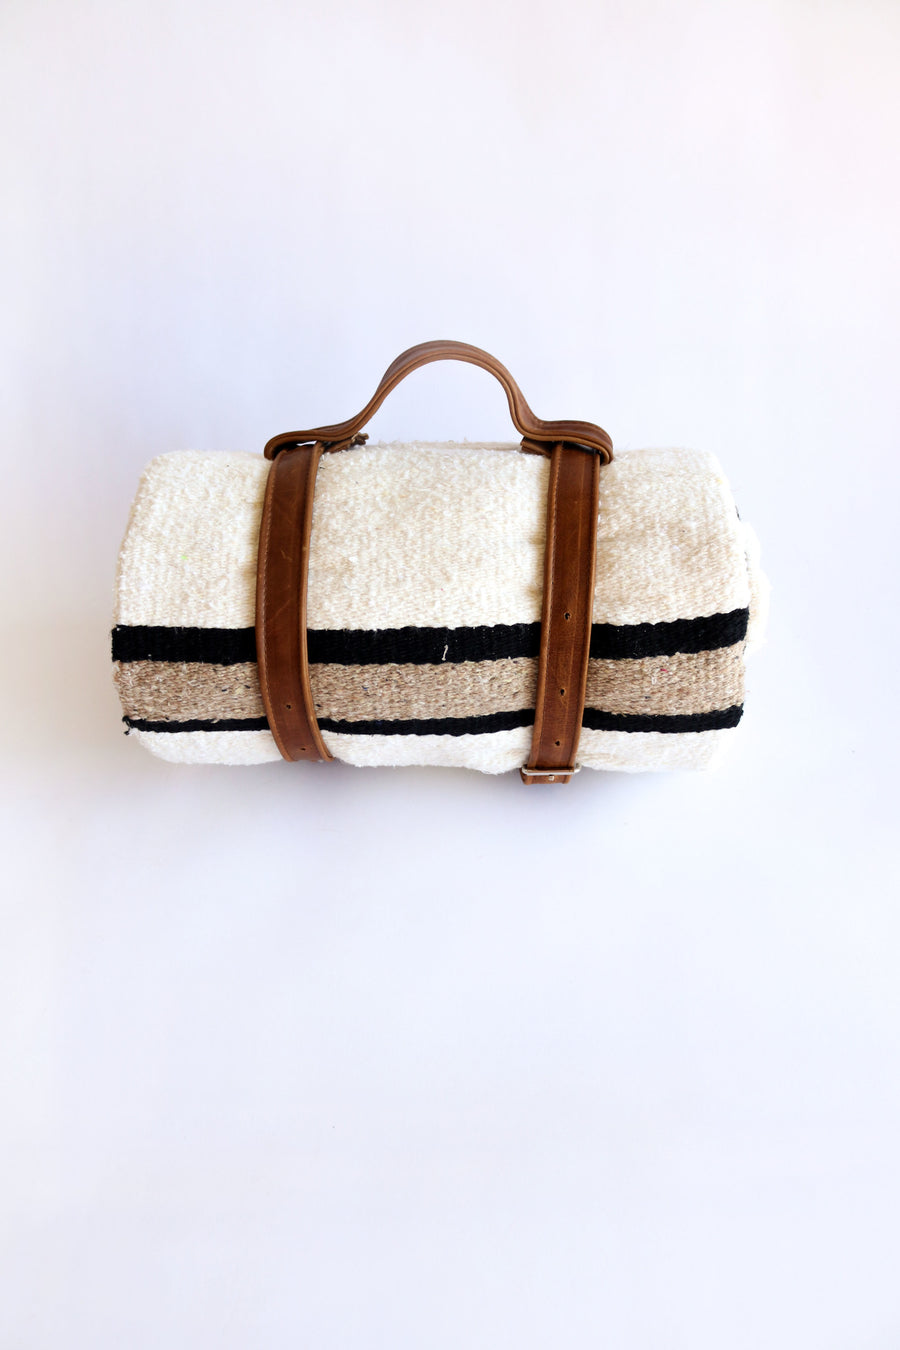 Tote // Handcrafted Blanket Holder